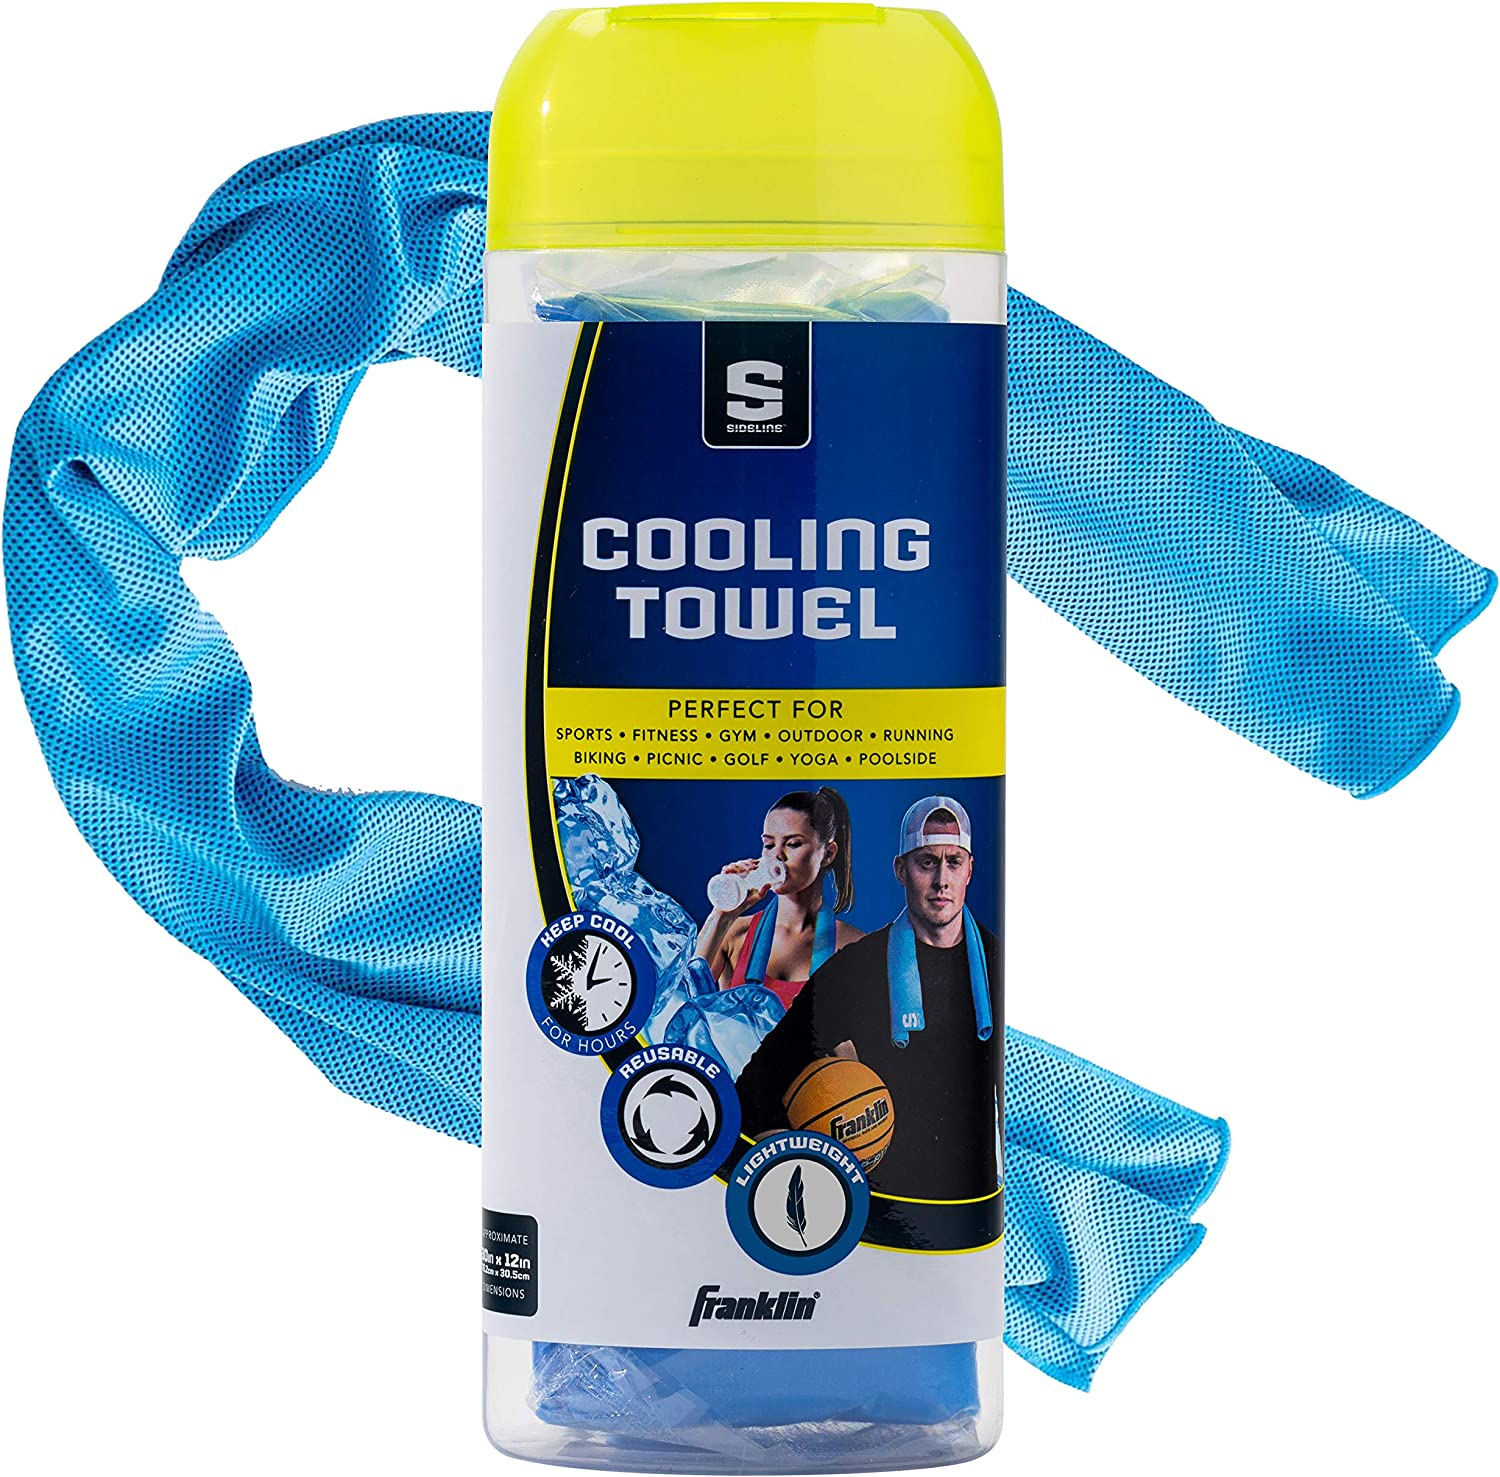 Franklin Sports Sideline Cooling Towel – Snap Cooling Towel for Athletes and Sports – Cools Body on Hottest Days – PVA Material, Antibacterial and Environmentally Friendly – Cool Blue